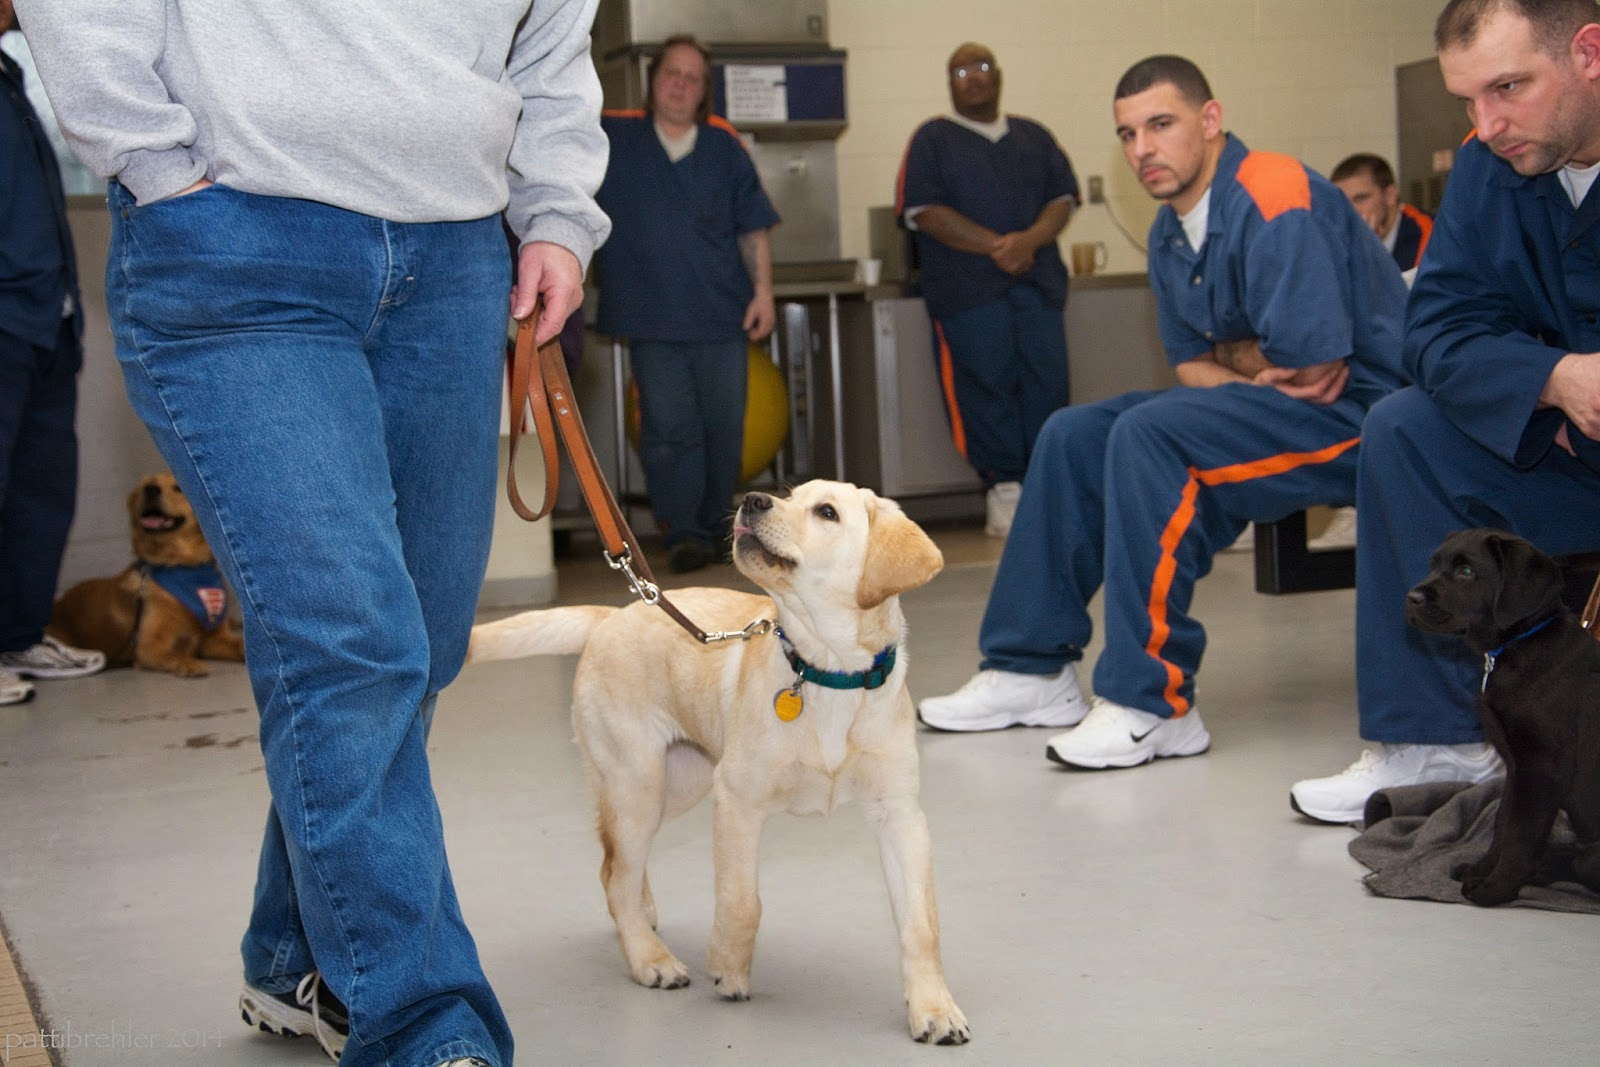 A yellow lab puppy is walking on the left side of a woman wearing a grey sweatshirt and blue jeans. You cannot see the woman's head or upper body. She is holding the leash loosely with her left hand and her right hand is in her right pocket. Five men dressed in blue prison uniforms are to the right watching, two are standing and three are sitting down. A small black lab is sitting on a grey mat on the far right side. You can just see a golden retriever lying down behind the woman's legs on the left side of the photo.